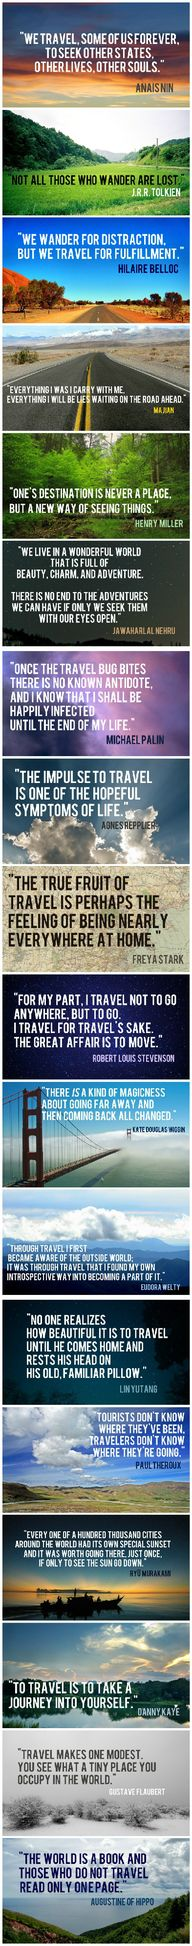 18 Travel Quotes to